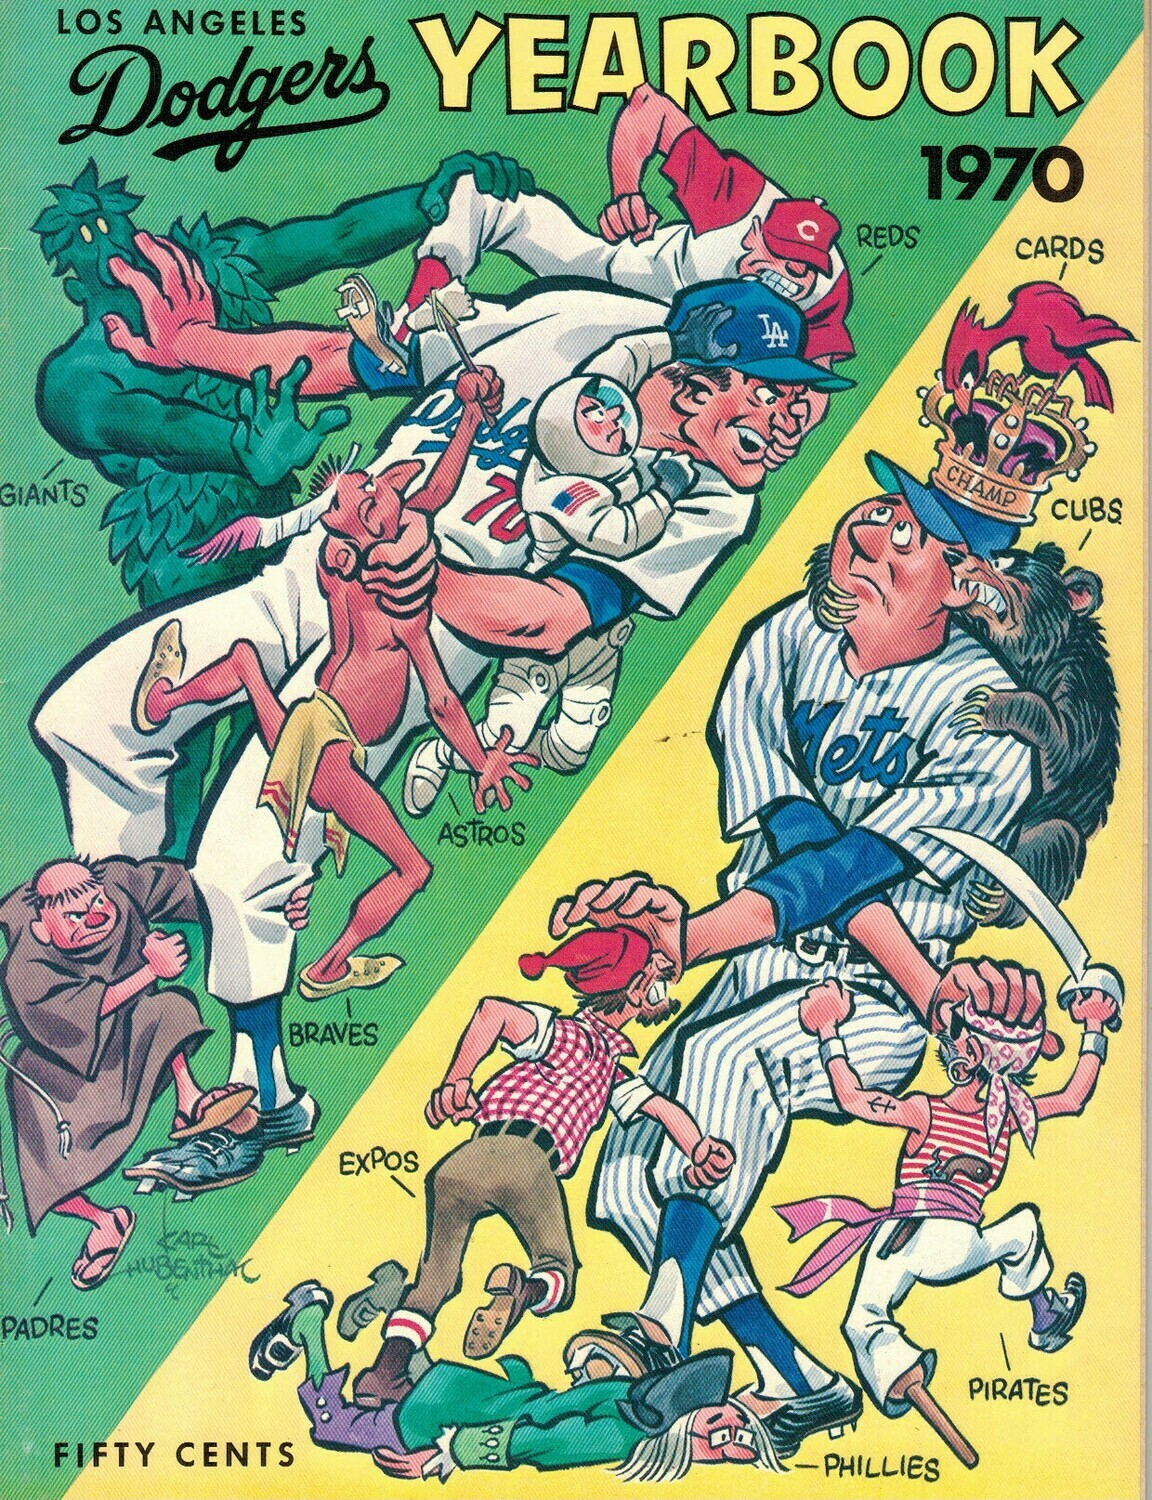 1970 Los Angeles Dodgers Official Yearbook